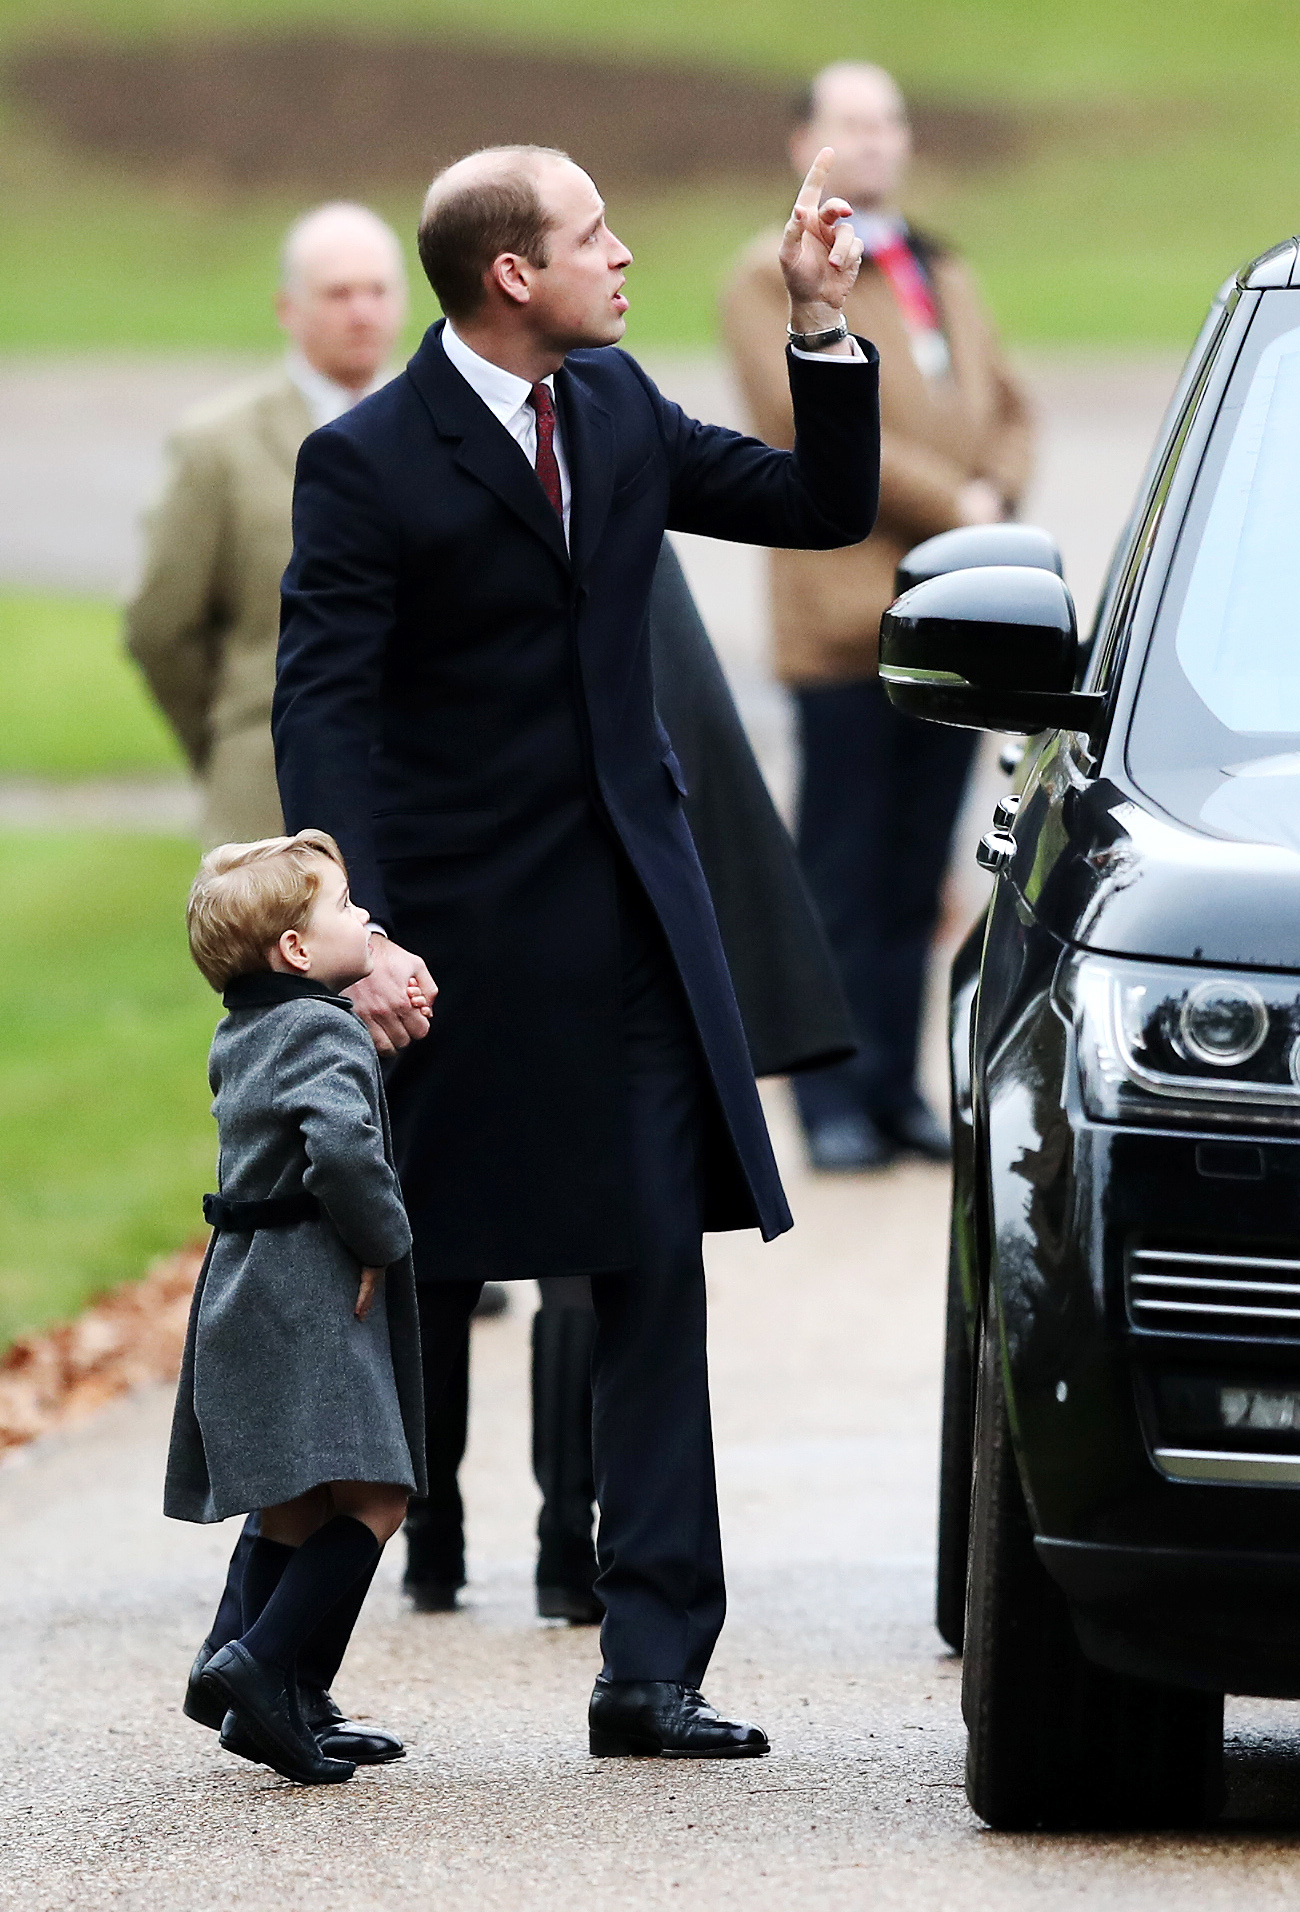 Britain's Prince William and Prince George, left, arrive to attend the morning Christmas Day service at St Mark's Church in Englefield, England, Sunday Dec. 25, 2016. A heavy cold is keeping Queen Elizabeth II from attending the traditional Christmas morning church service near her Sandringham estate in rural Norfolk, England. (Andrew Matthews/Pool via AP)